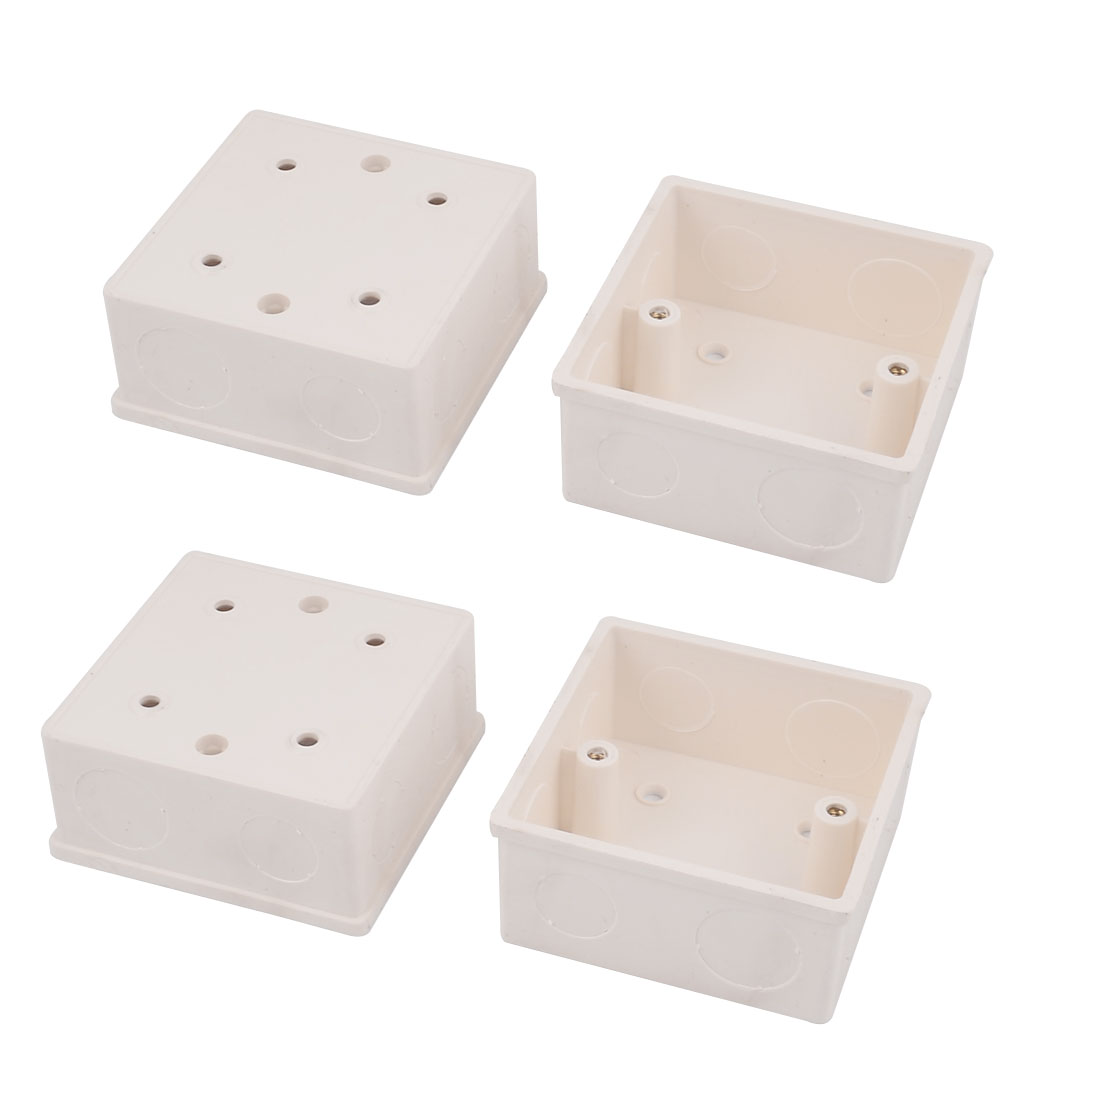 4 Pcs 86mmx86mmx43mm Off-white PVC Mount Back Box for Wall Socket